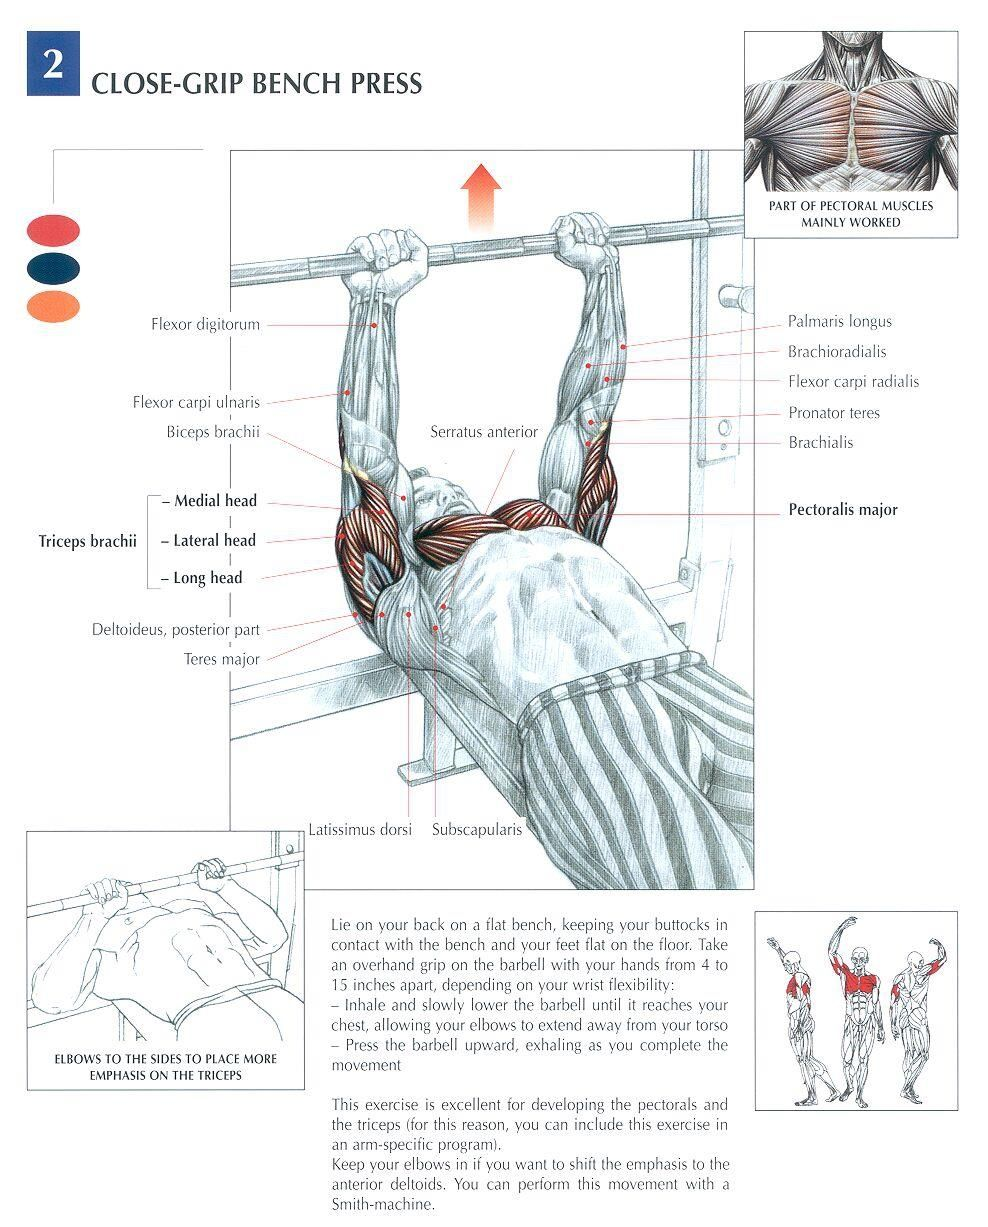 Powerlifting Bench Press Pyramid Program For Max Strength: Close Grip Bench Press...good Mass Builder For Your Tri's